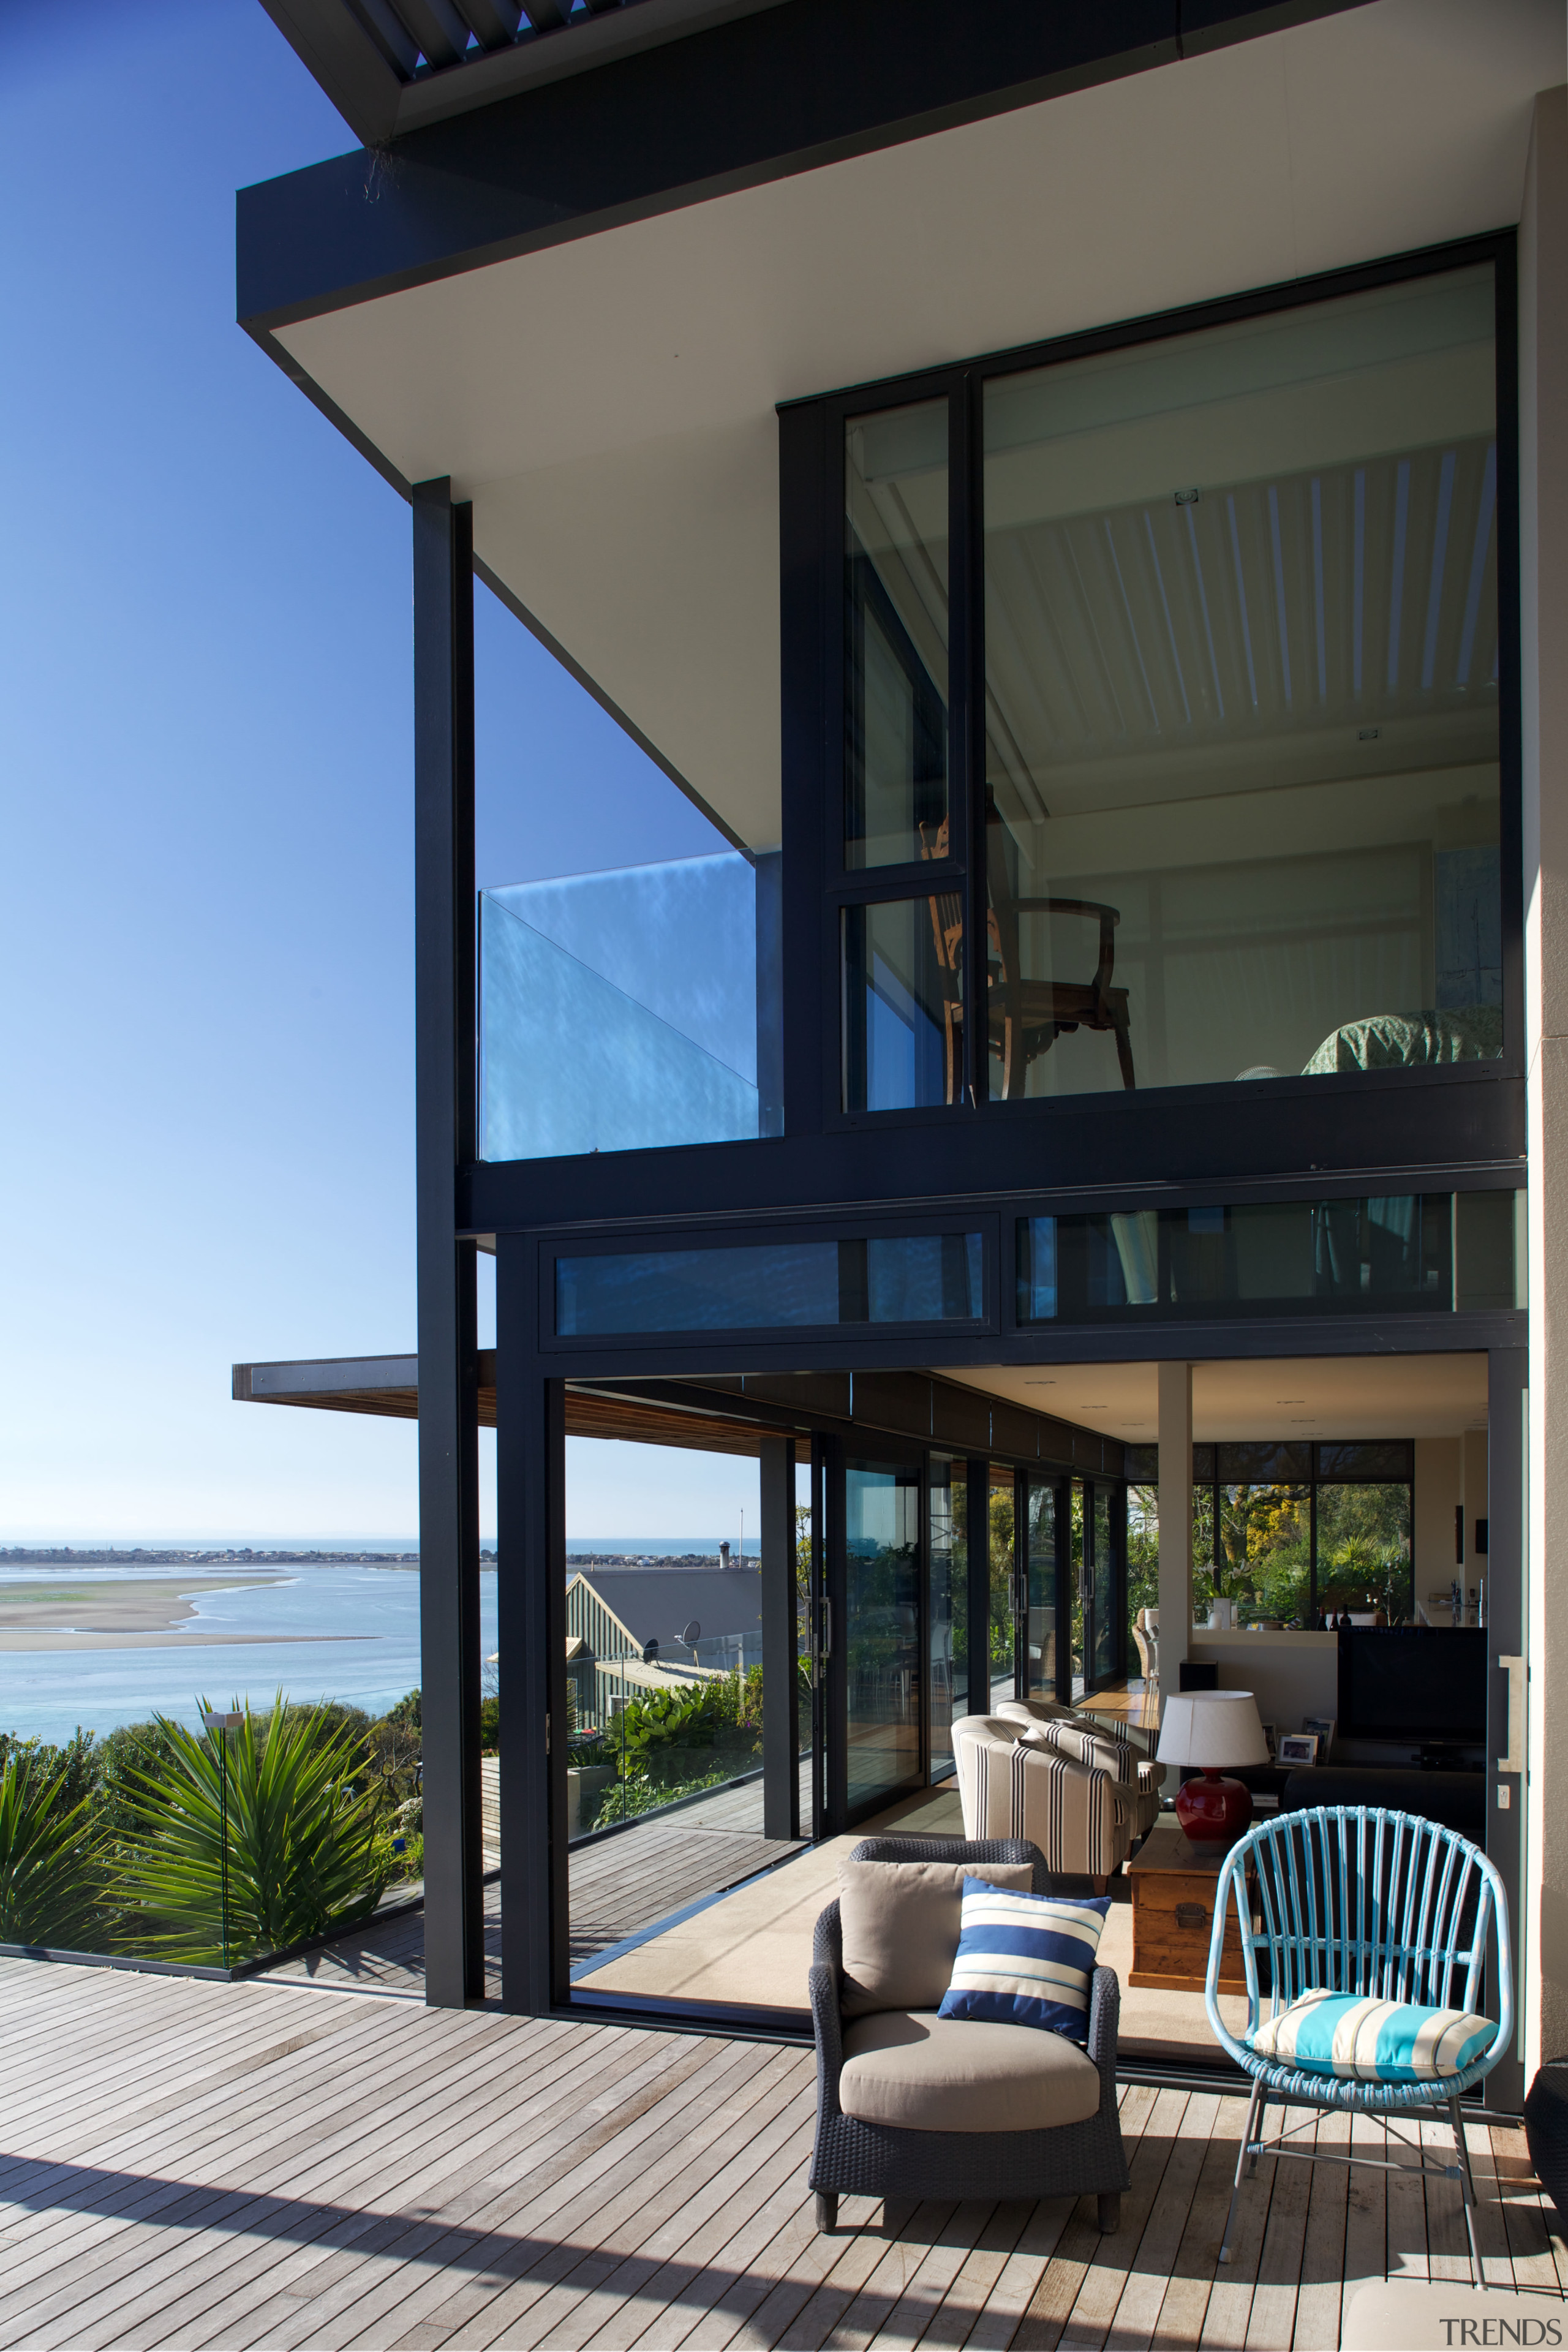 Sliding doors open living spaces to the outdoors. apartment, architecture, balcony, condominium, estate, home, house, interior design, property, real estate, window, black